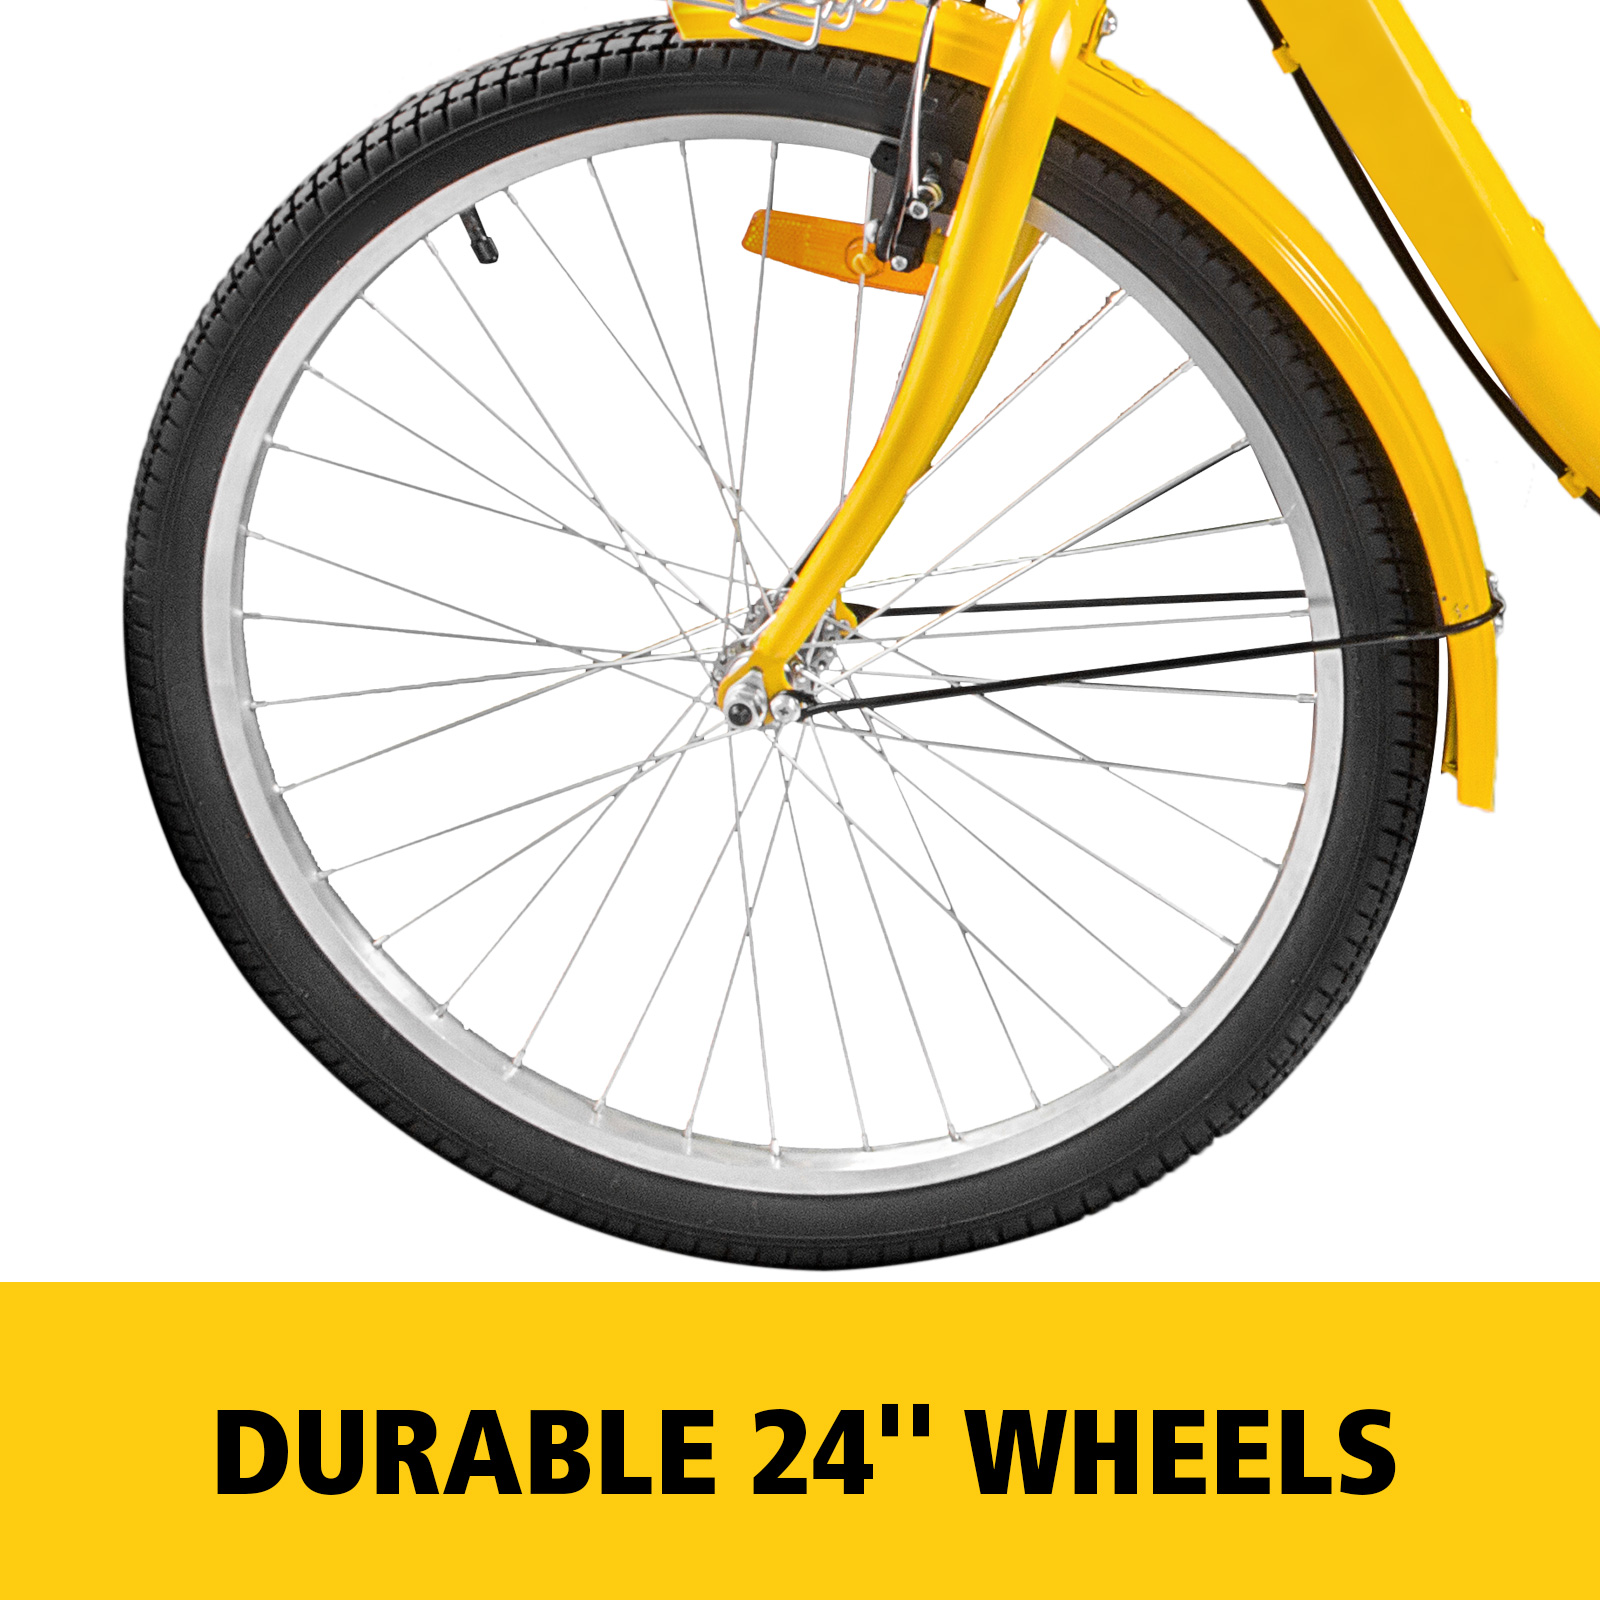 20-24-26-034-Adult-Tricycle-1-7-Speed-3-Wheel-For-Shopping-W-Installation-Tools miniature 377